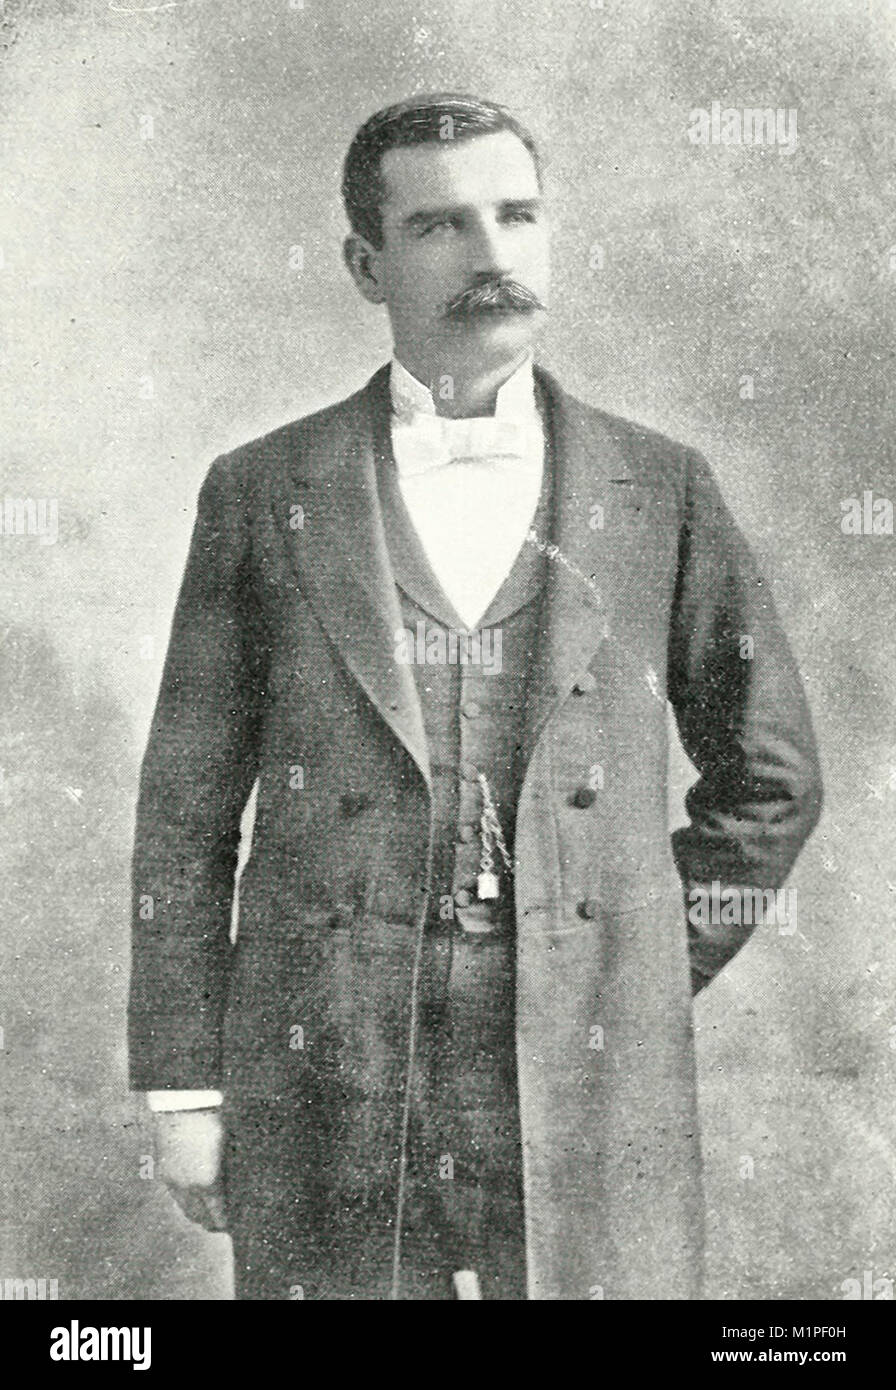 Jack Clifford, Union Leader charged with murder in the aftermath of the Homestead Strike of 1892 - Stock Image